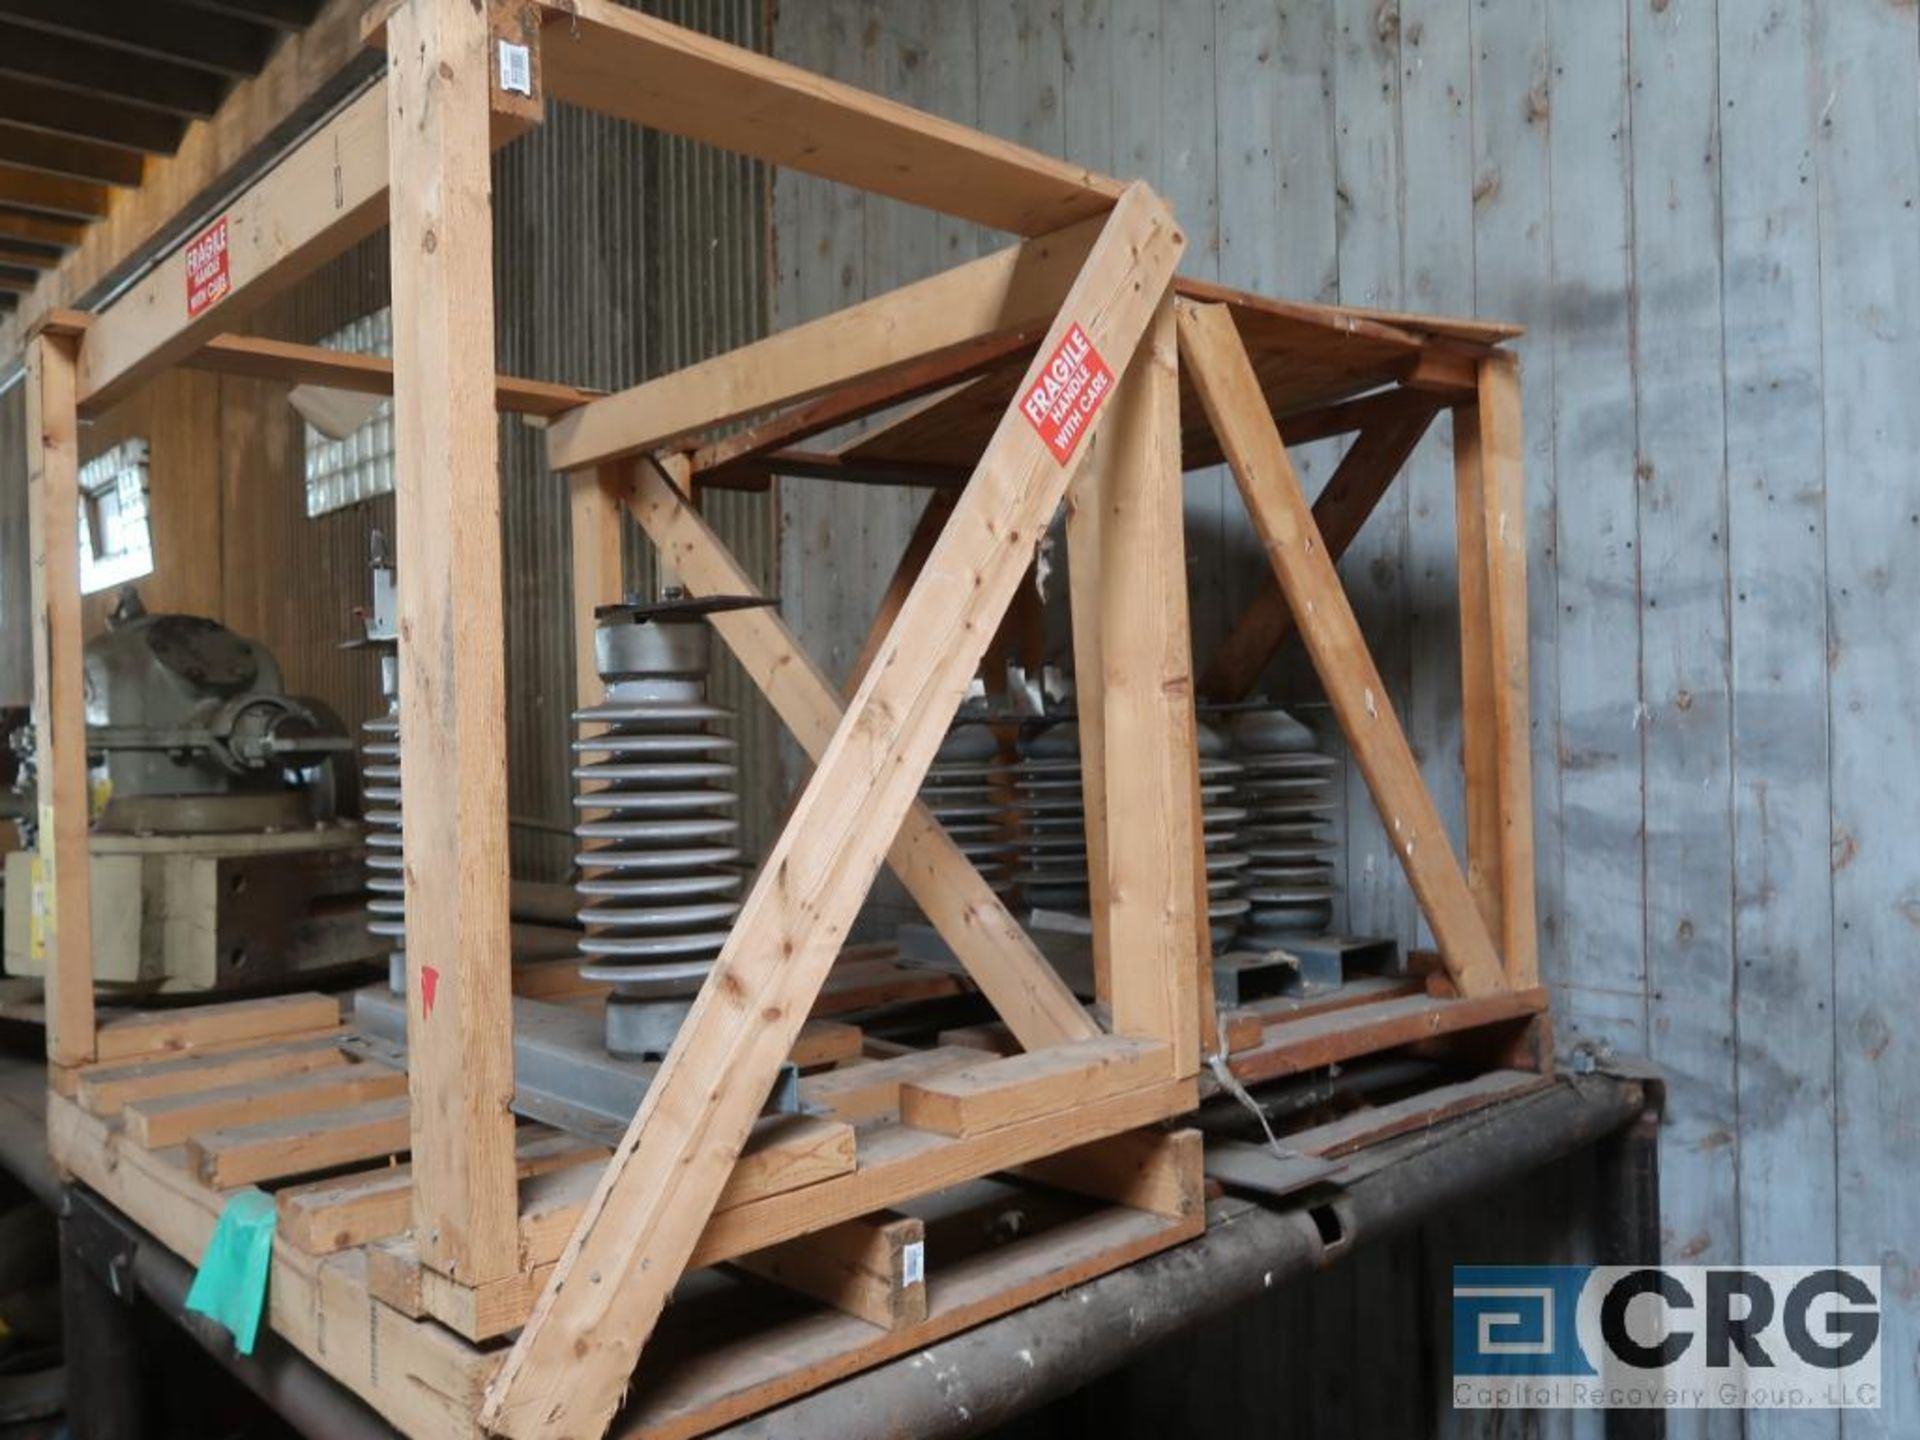 Lot of assorted motor, gear bearing housing, gear drive on metal rack (Next Bay Cage Area) - Image 2 of 16